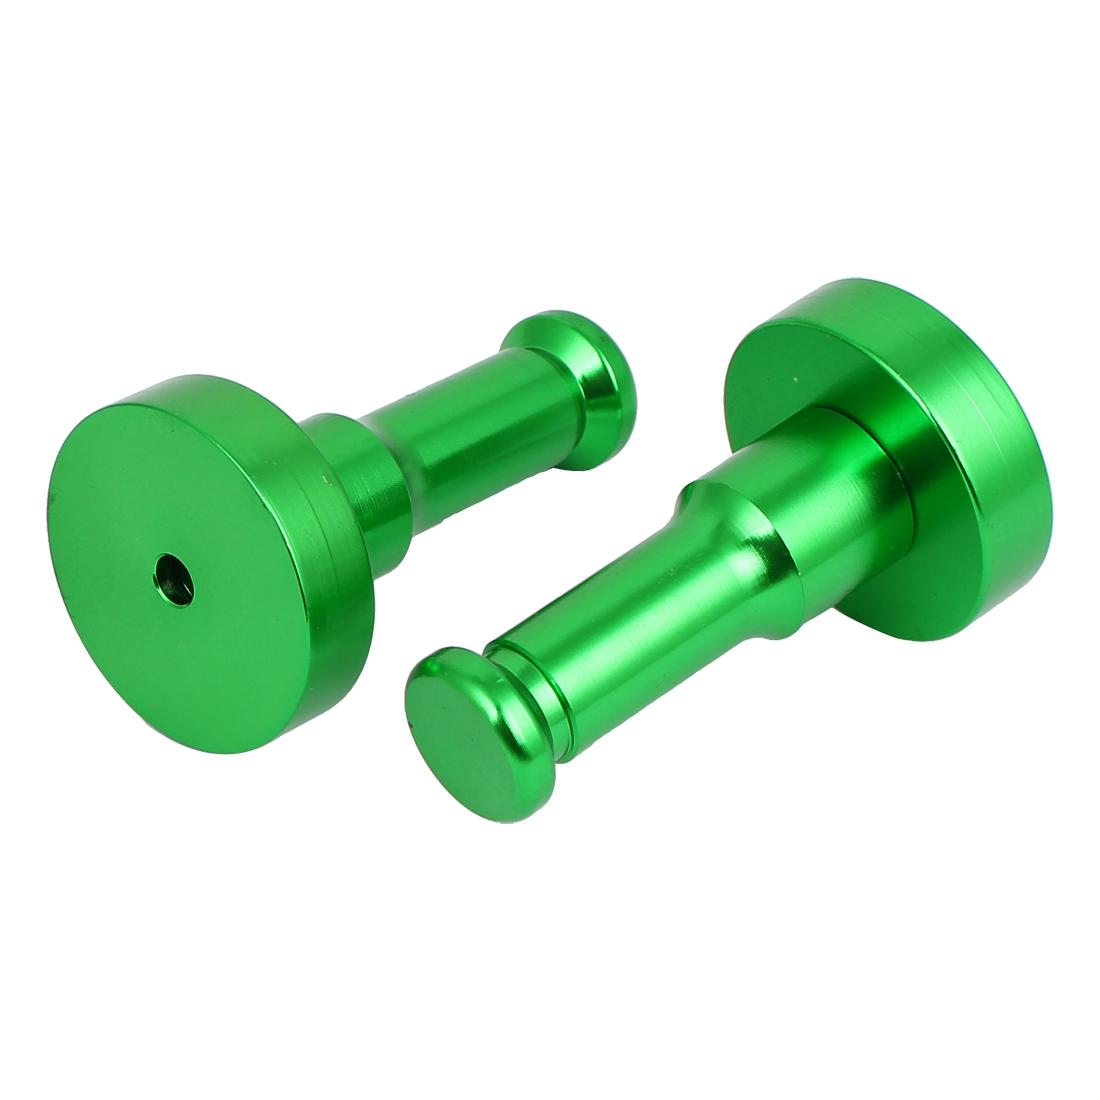 Bathroom Bedroom Clothes Round Robe Hook Decorative Wall Hanger Green 2pcs